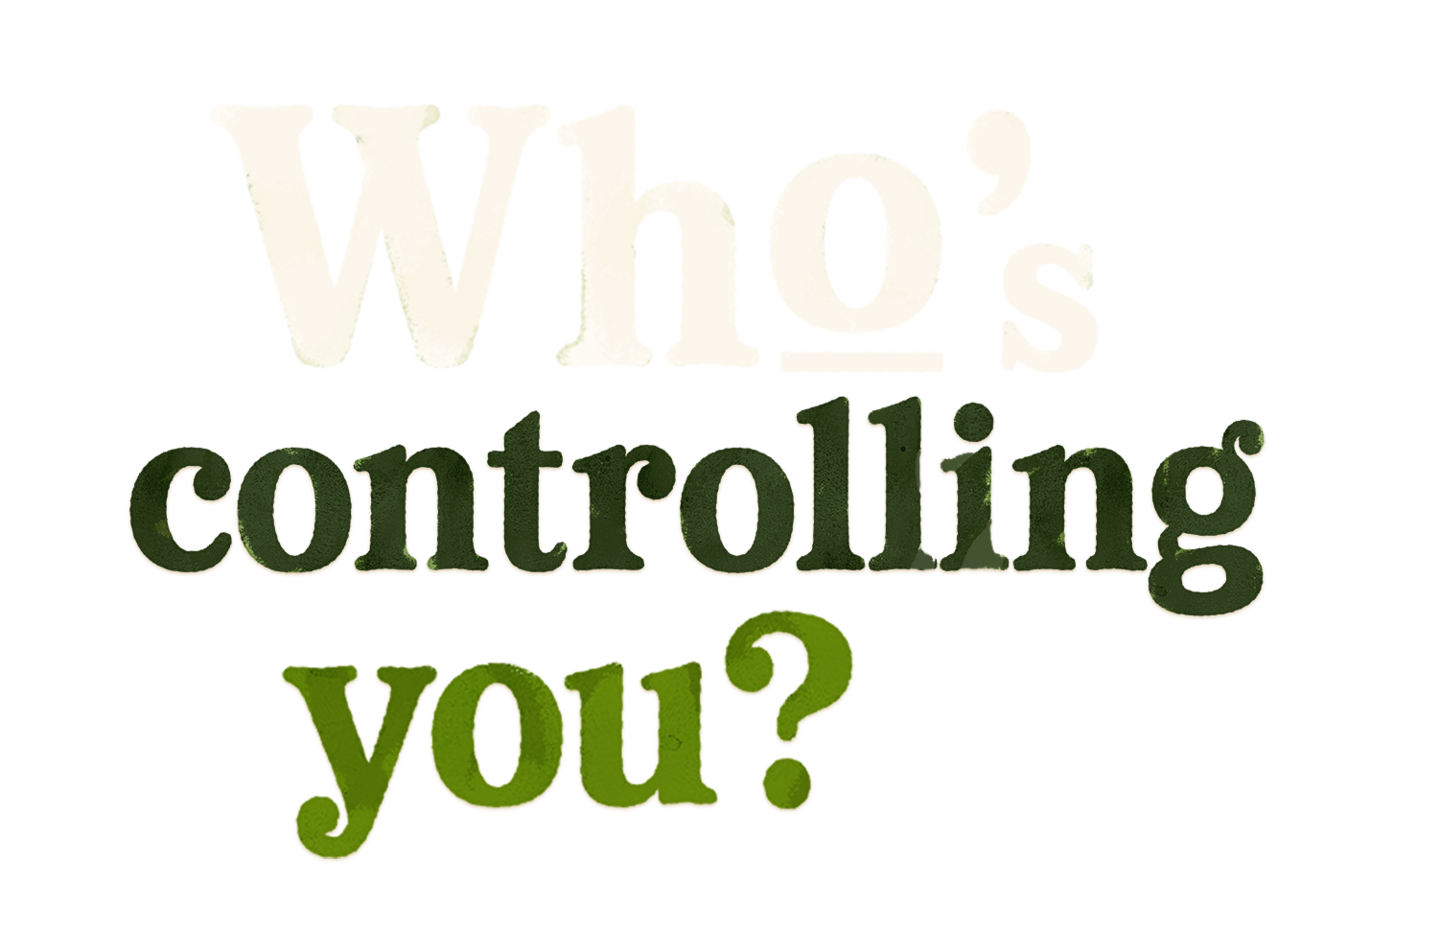 Who's controlling you